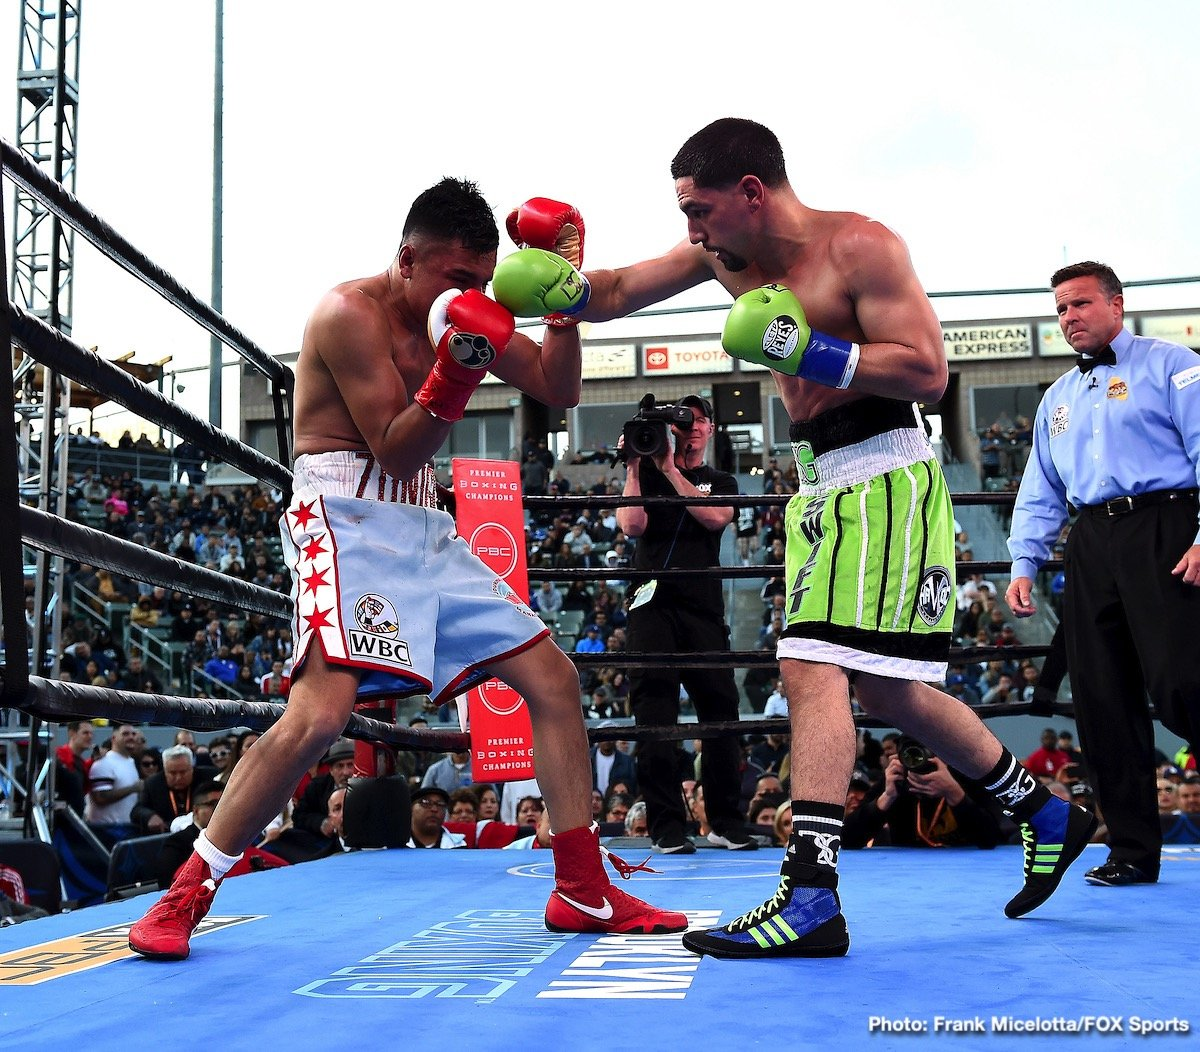 Adrian Granados, Danny Garcia - In a spectacular performance former two division belt holder Danny Garcia (35-2, 21 KOs) bludgeoned the game but limited Adrian Granados (20-7-2, 14 KOs) in scoring a seventh round TKO victory on Saturday night in a fight that was shown on PBC on Fox at the Dignity Health Sports Park in Carson, California.